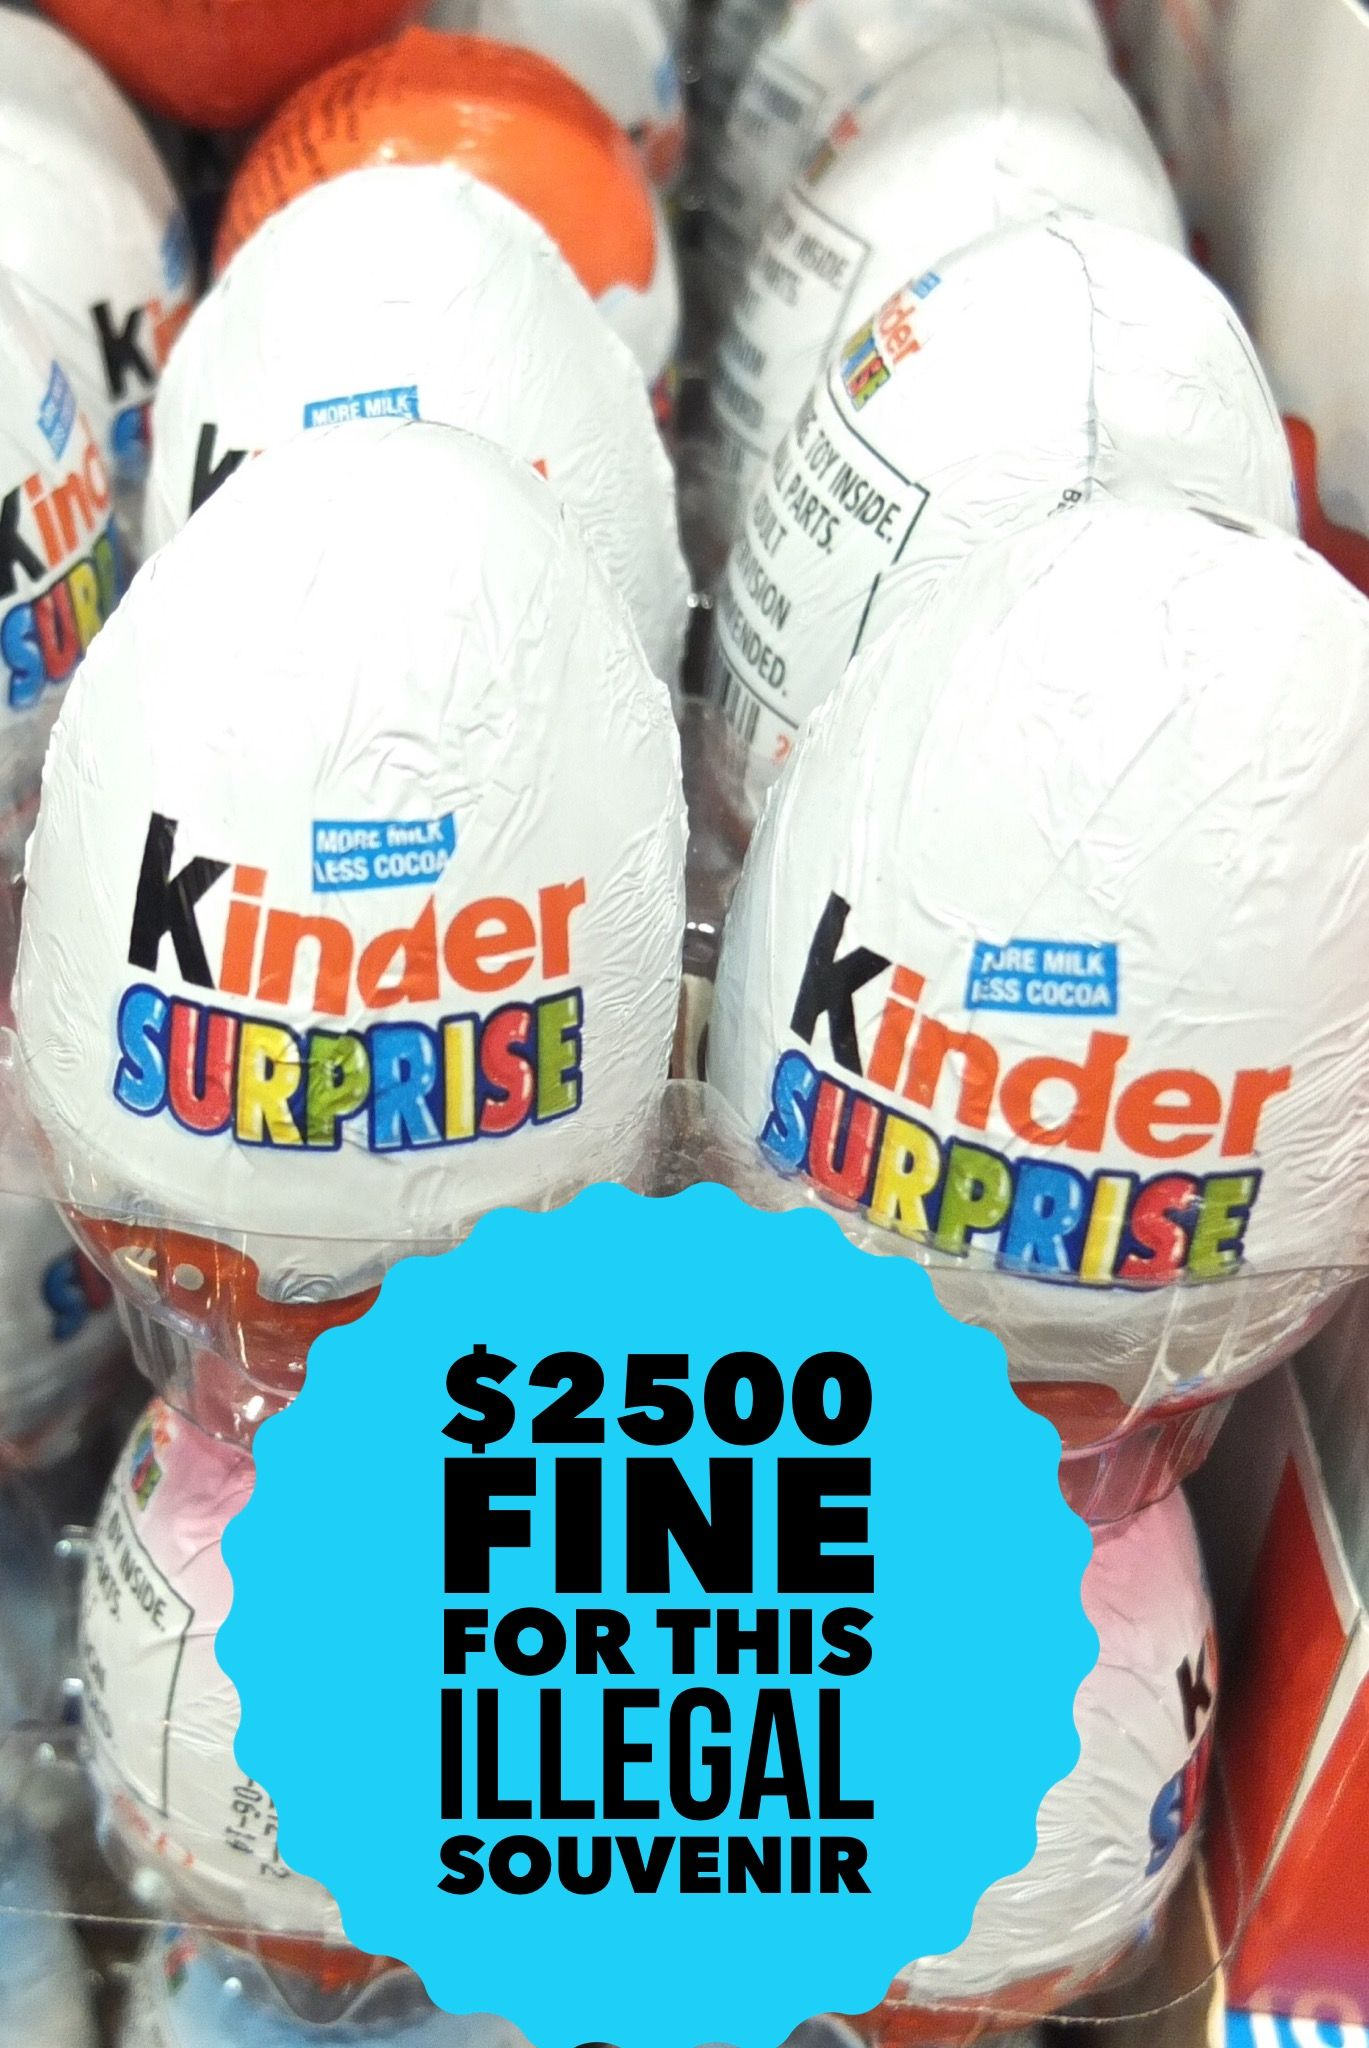 Kinder Egg Illegal Bring Home A Kinder Surprise Egg And You Could Be Fined